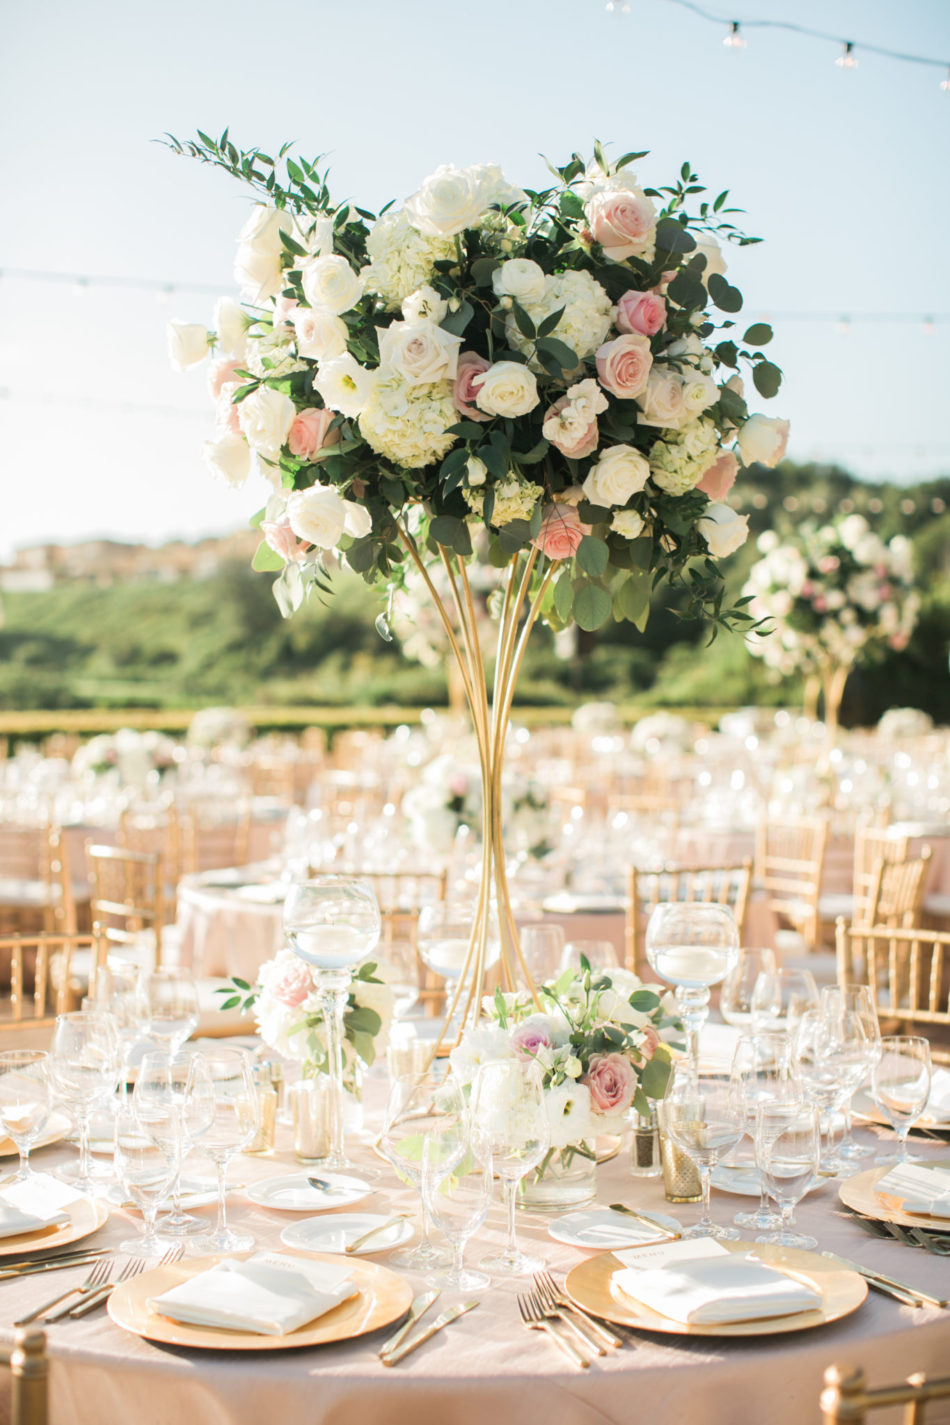 indian fusion wedding, blush reception decor, blush centerpiece, elevated florals, floral design, florist, wedding florist, wedding flowers, orange county weddings, orange county wedding florist, orange county florist, orange county floral design, flowers by cina